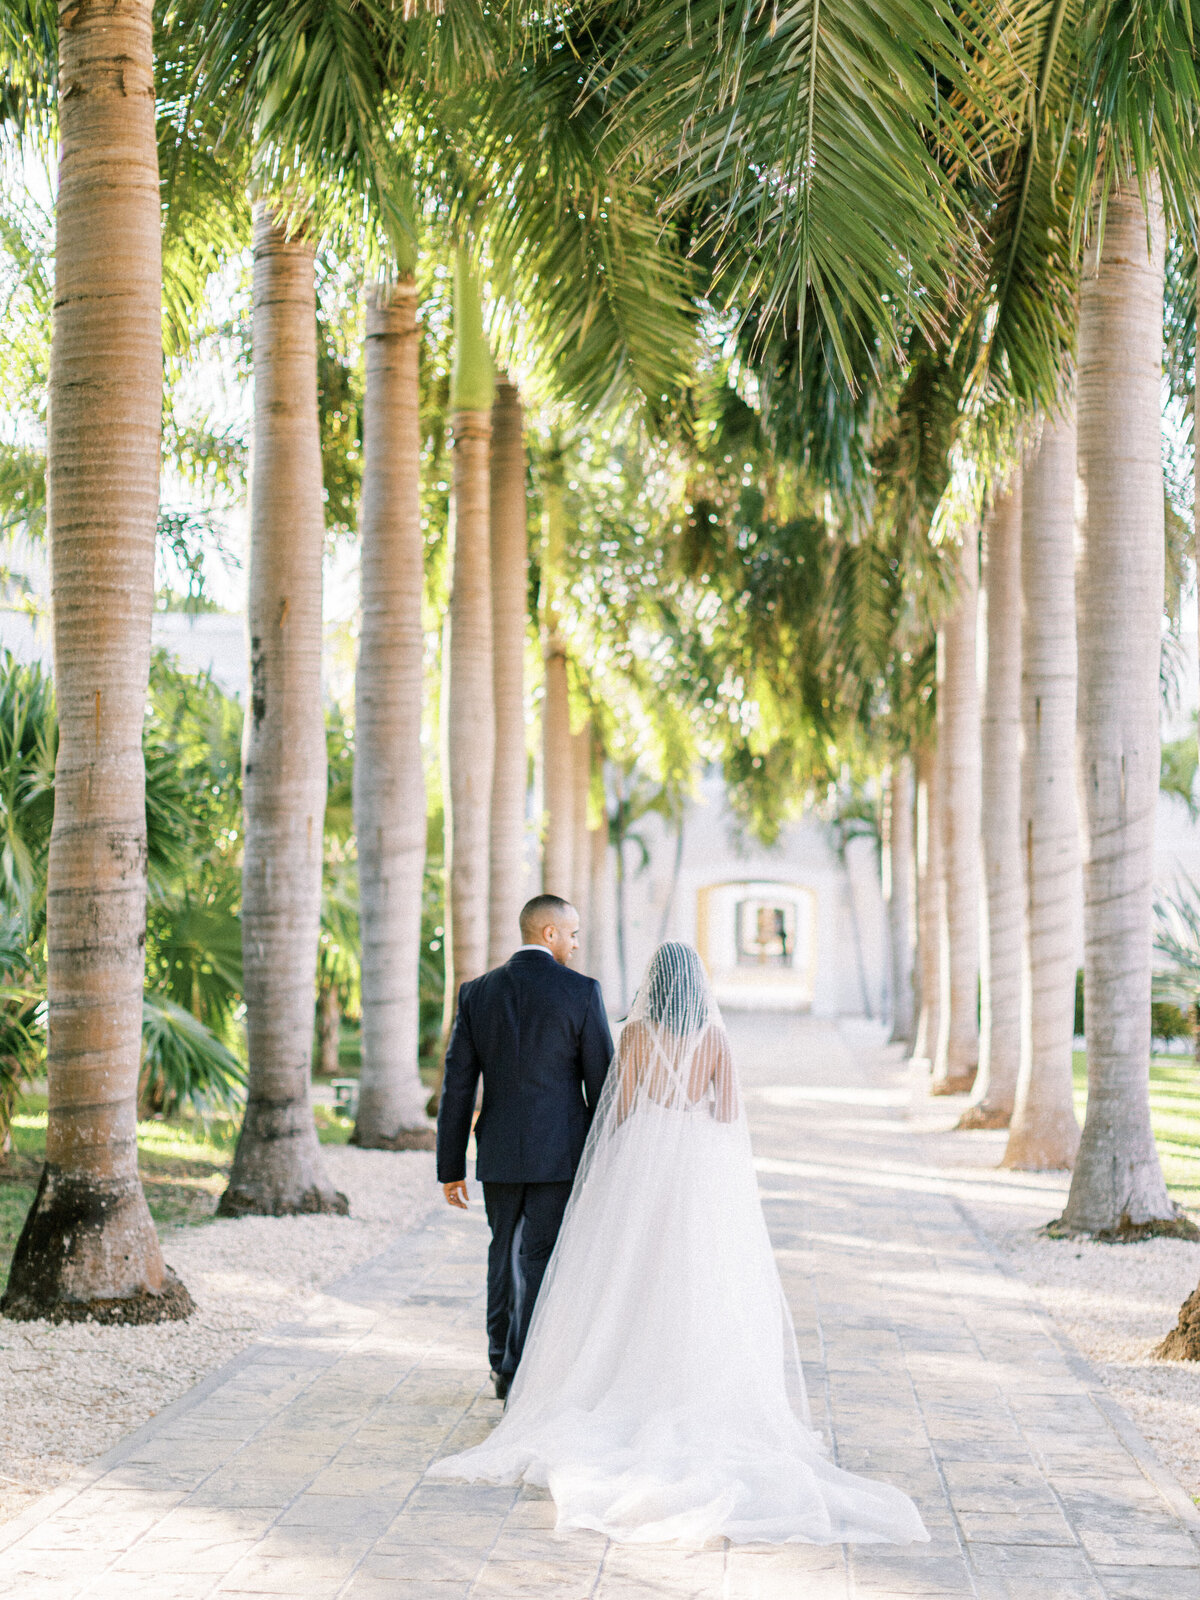 Tiffaney Childs Photography-Florida Wedding Photographer-Stephanie + Juan-Dreams Tulum Wedding-13